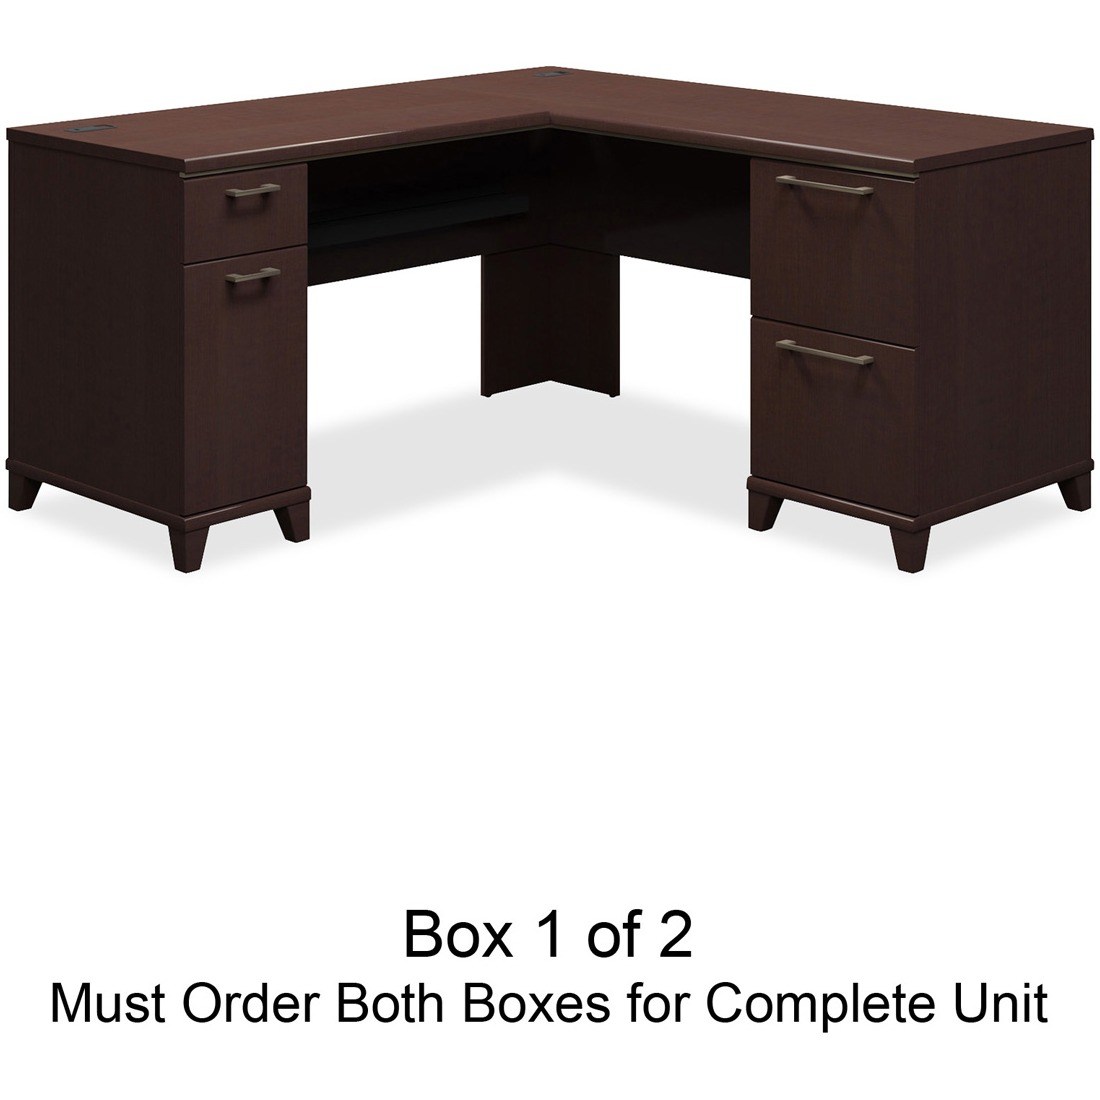 Enterprise Collection 60W x 60D L-Desk, Mocha Cherry (Box 1 of 2)